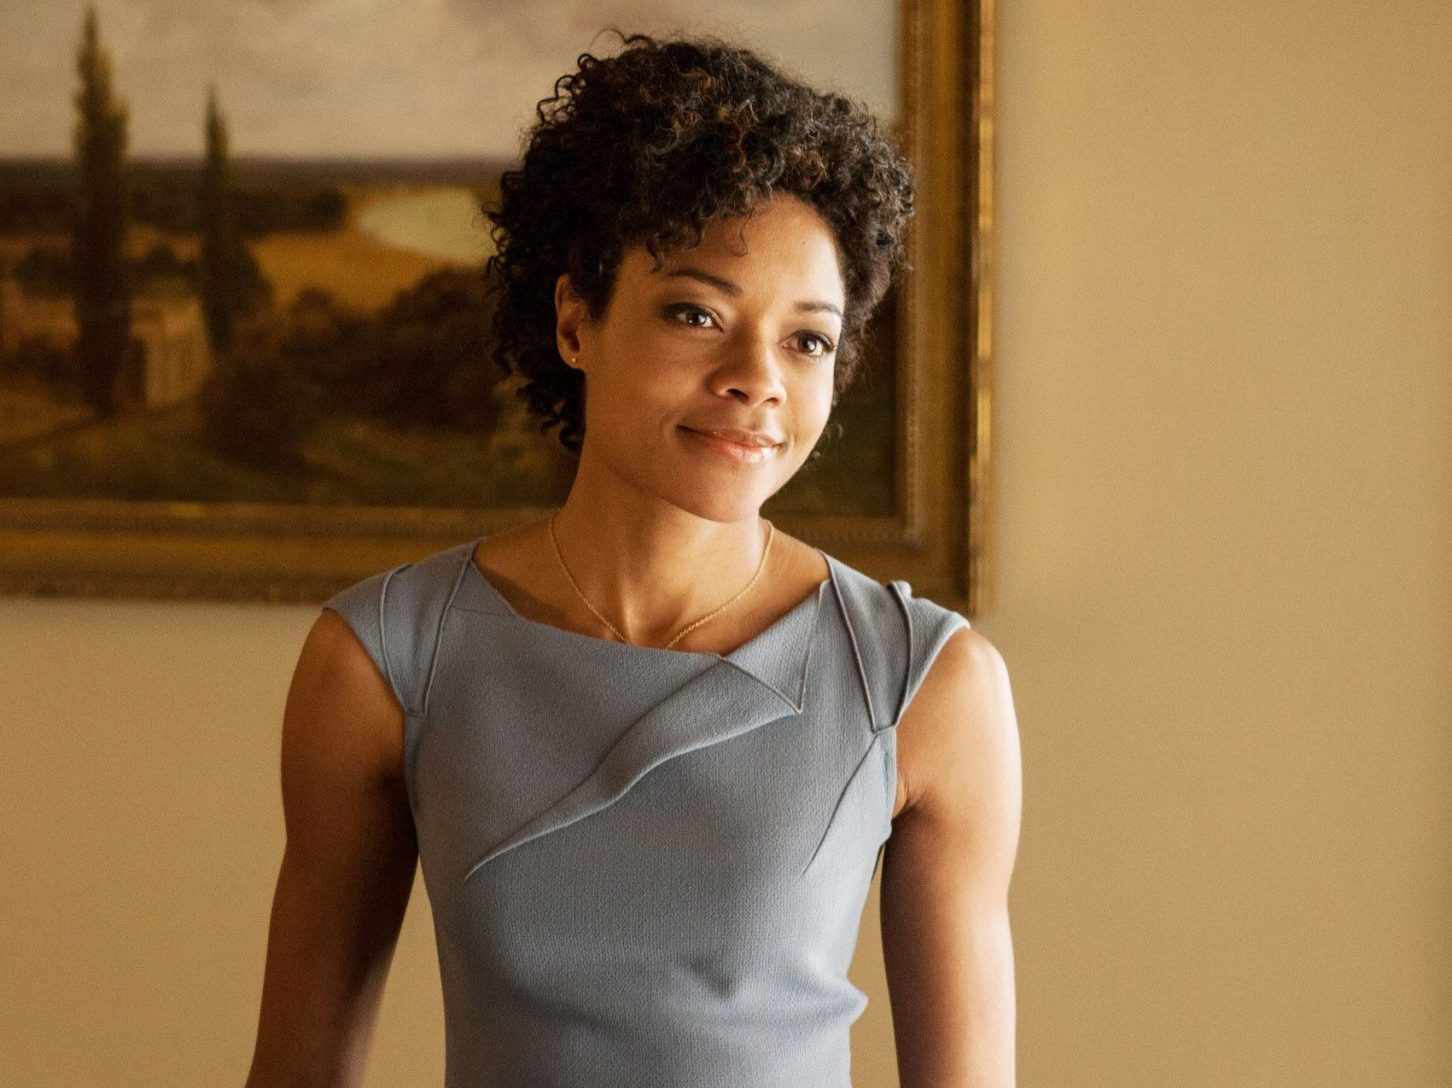 skyfall miss moneypenny scaled e1615379478412 30 Things You Probably Didn't Know About The James Bond Films